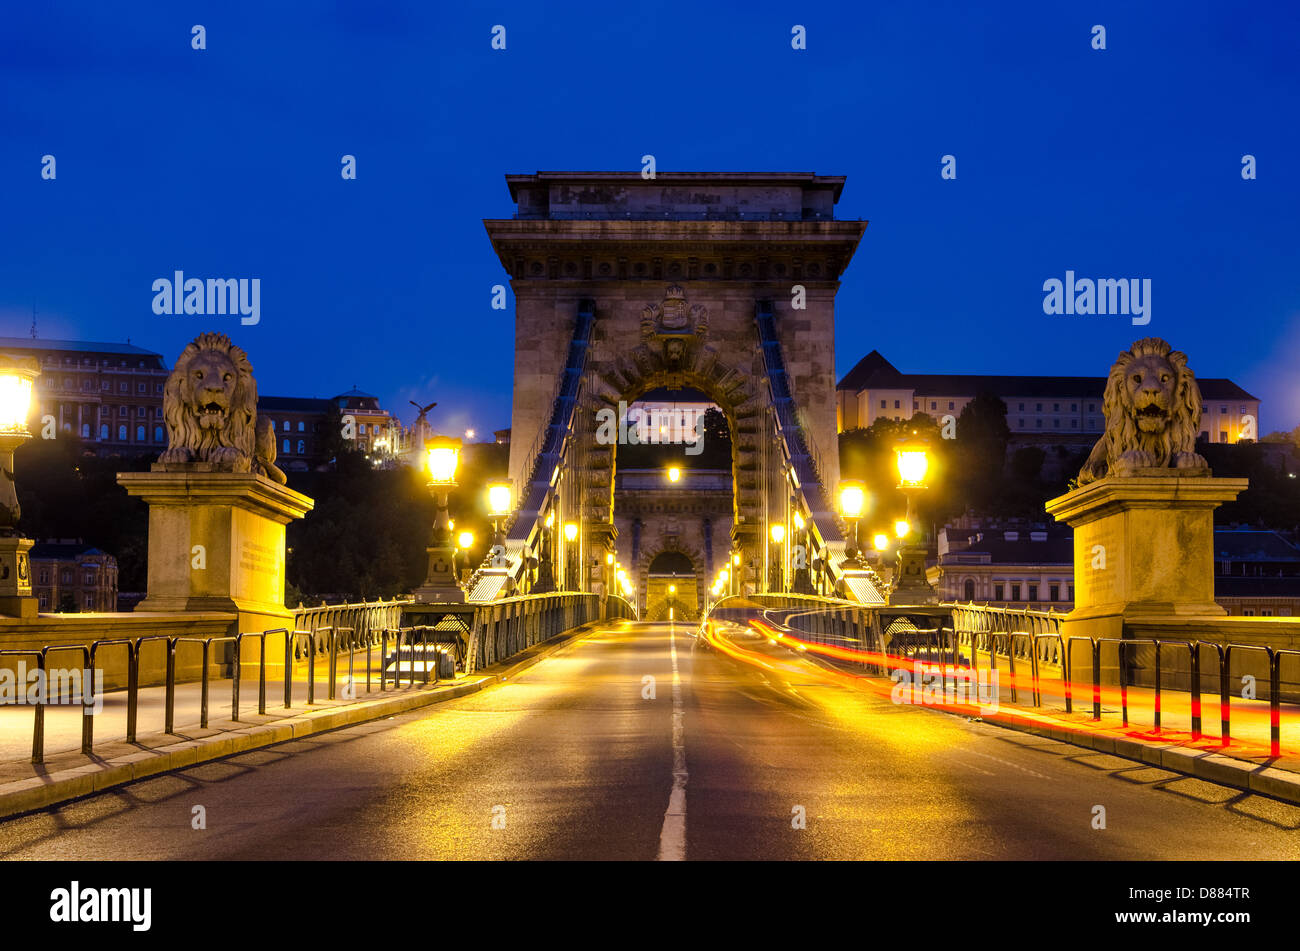 Night view of the famous Chain Bridge in Budapest, Hungary. - Stock Image